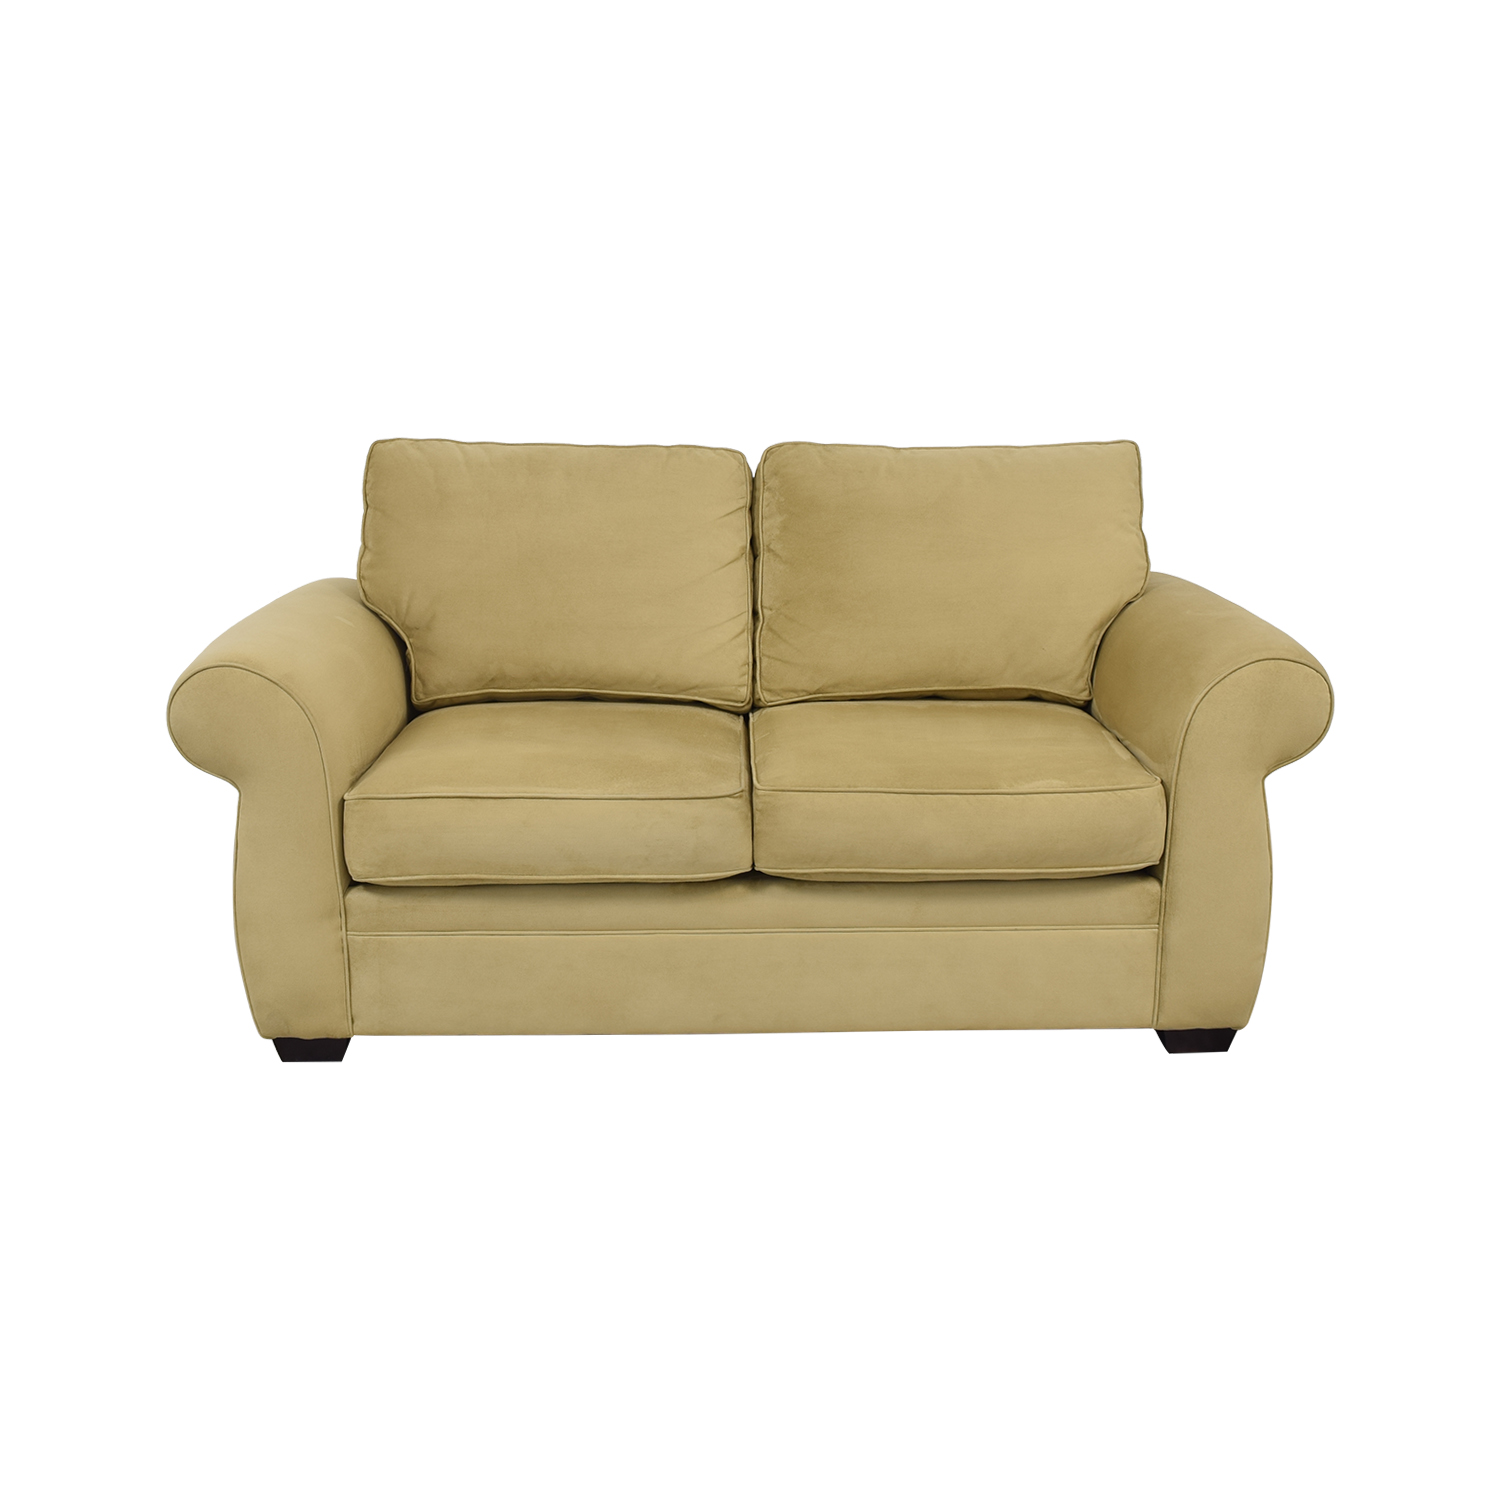 Pottery Barn Pottery Barn Pearce Loveseat Sofa price